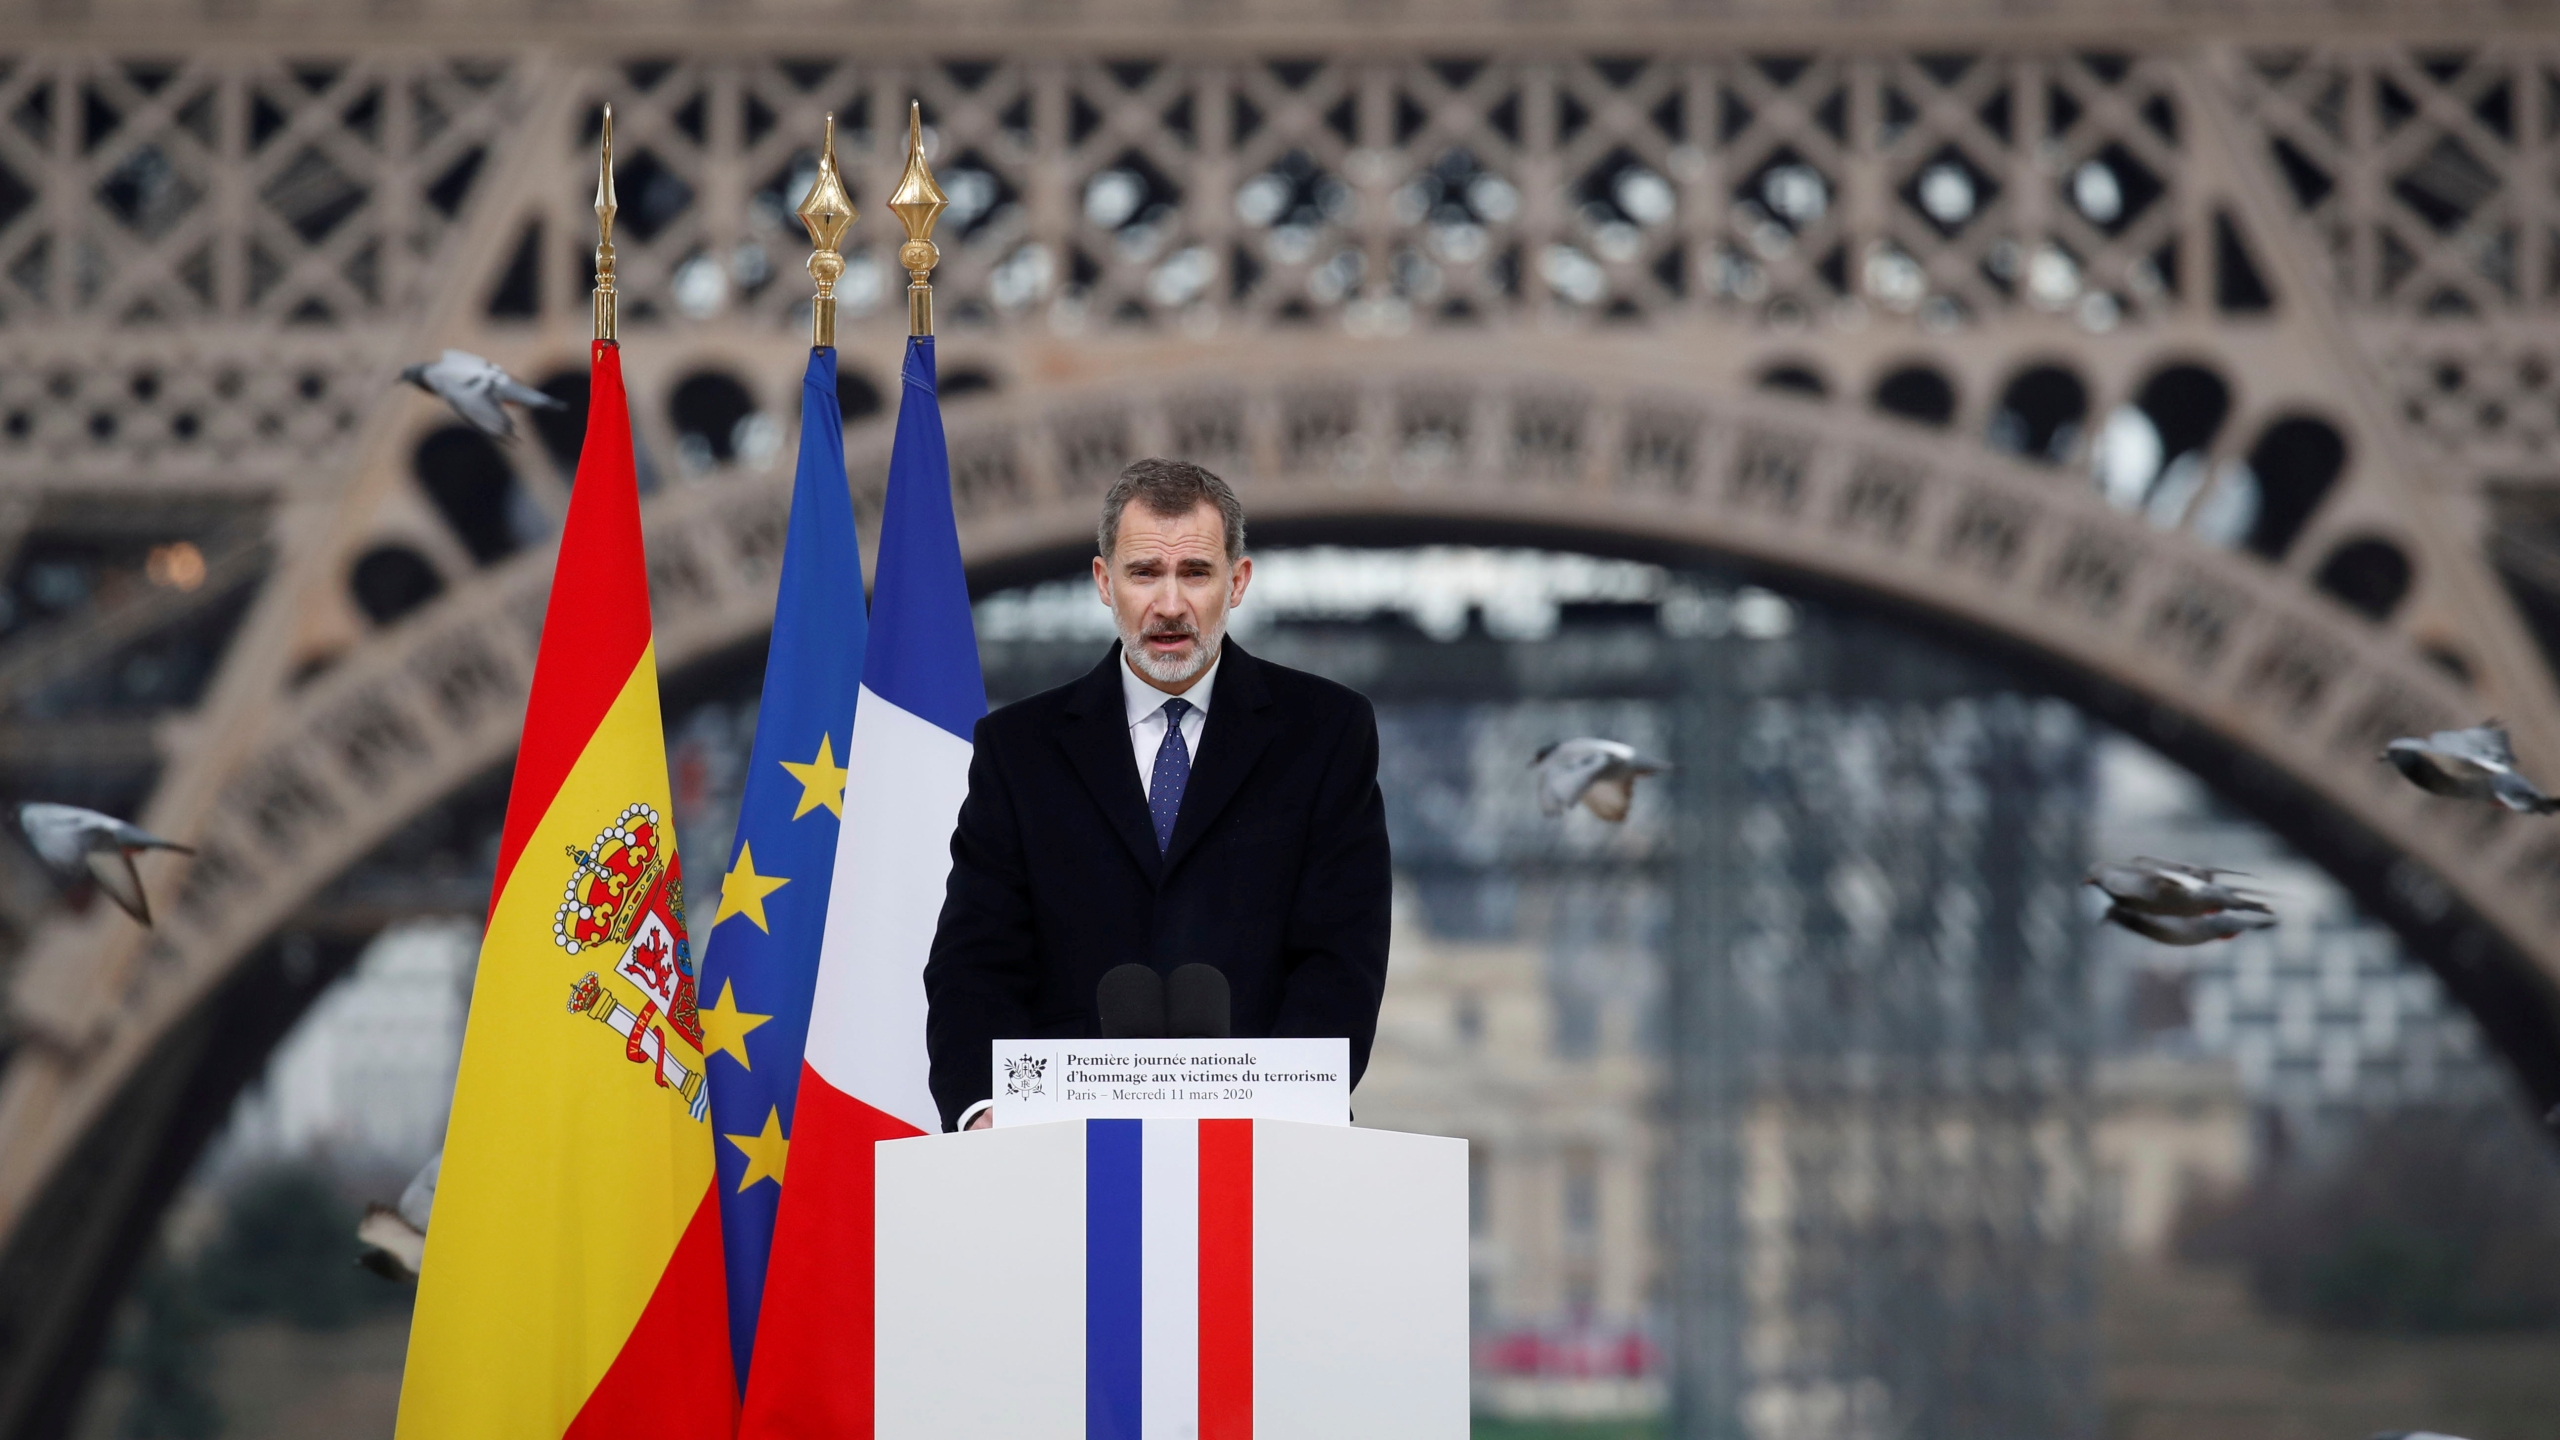 Ceremony to honour victims of terror attacks in Europe in Paris